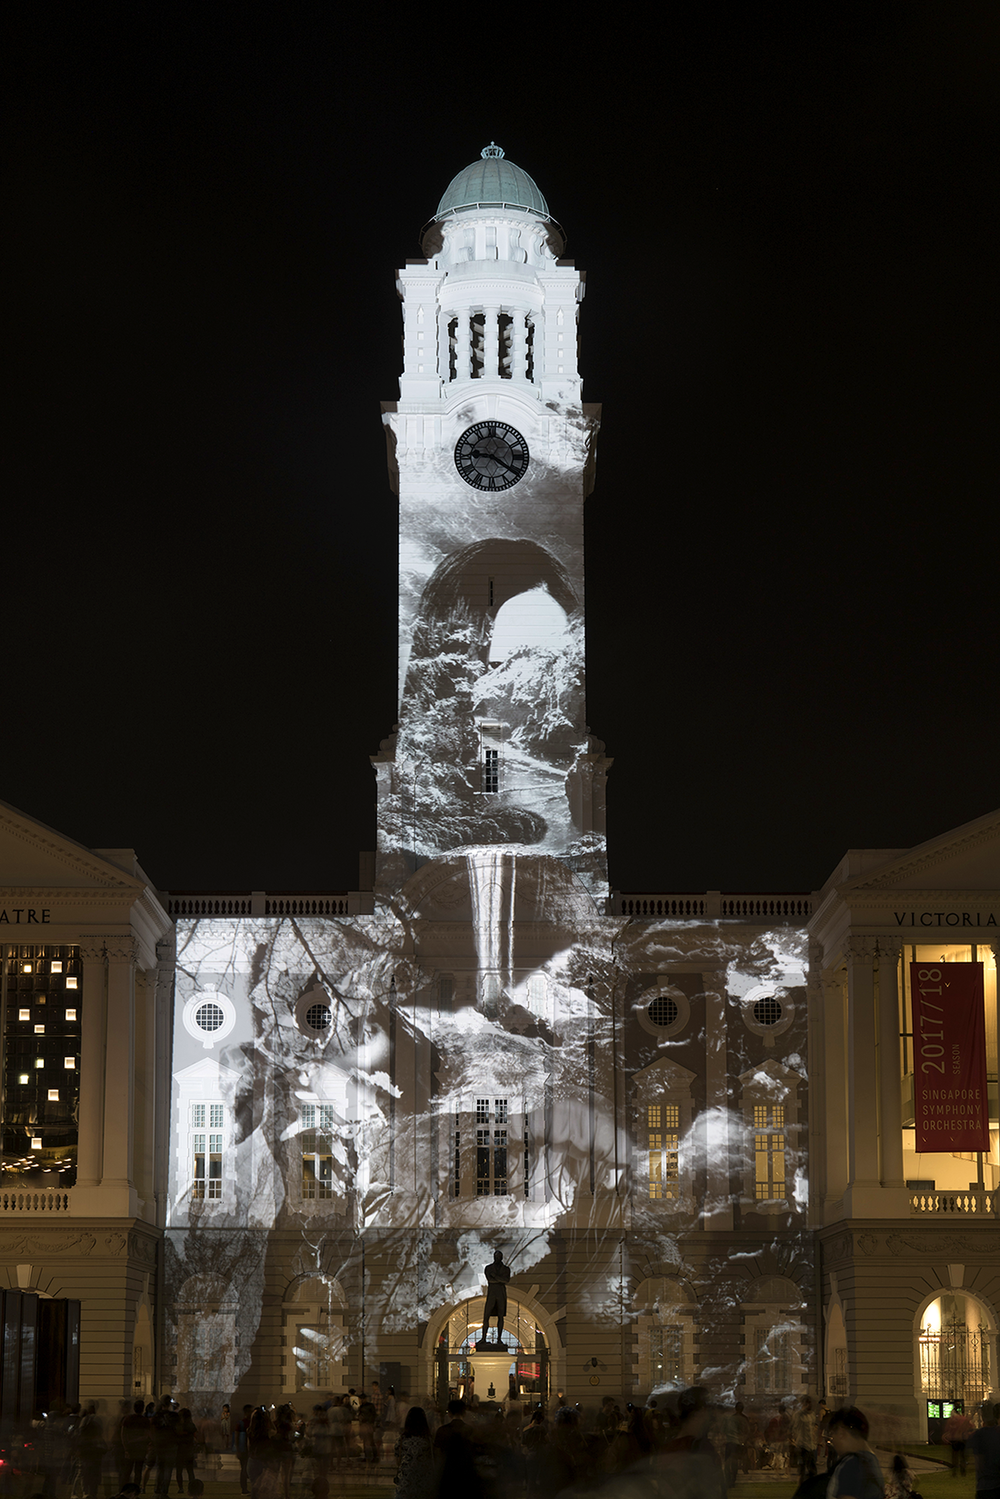 rock-built cities  Art Skins Projection Mapping for Annual Light to Night Festival 2018 - Civic District, Singapore  Light to Night Festival is an annual urban art event that celebrates the Civic District of Singapore. Over two weeks, this festival explores the sensation of light with colour through visual, literary and performing arts, transforming major cultural institutions and parks into spectacular works of art.  projection on architecture nov 2017